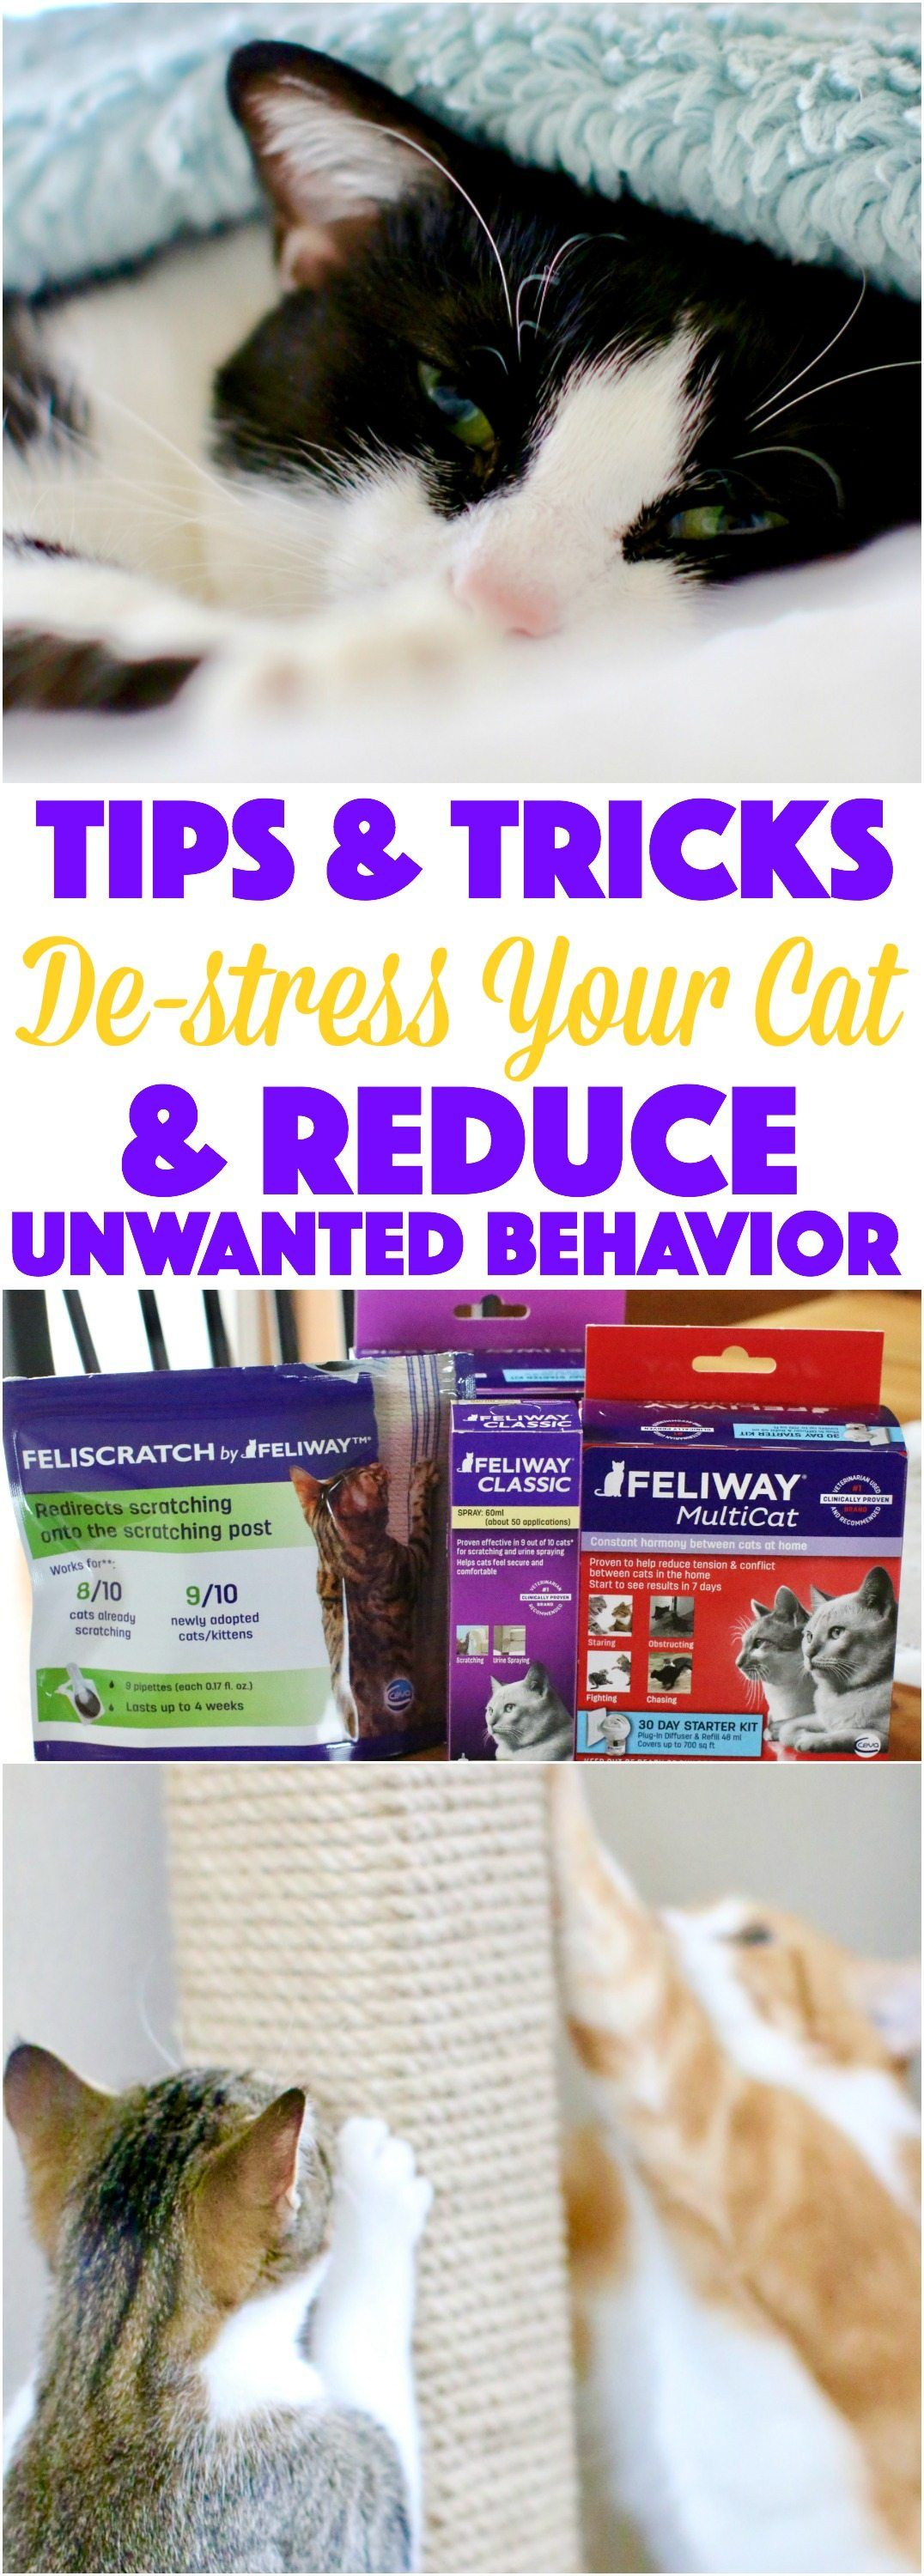 Tips and Tricks to De stress Your Cat and Reduce Unwanted Behavior